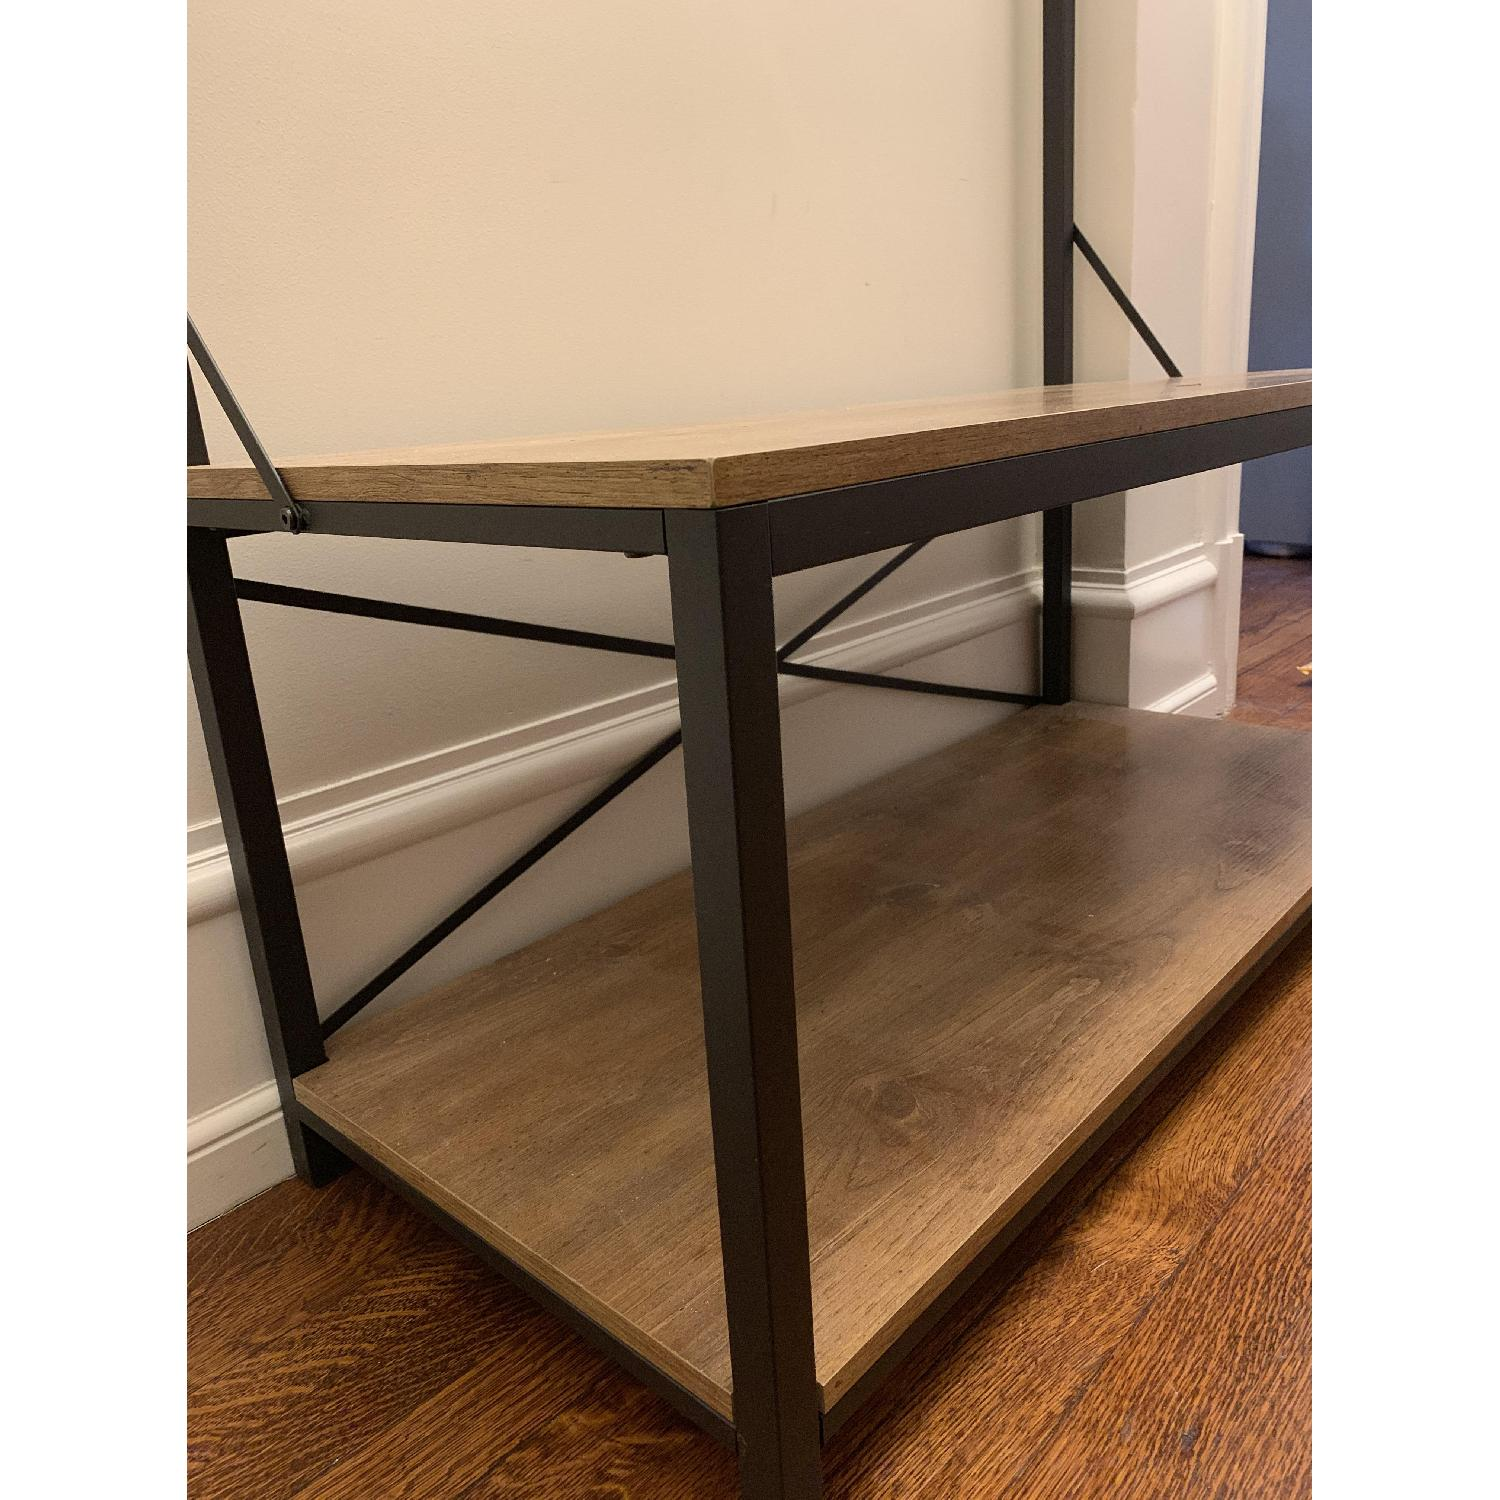 barnwood metal wood hall tree aptdeco frame accent table white glass side desk furniture curved patio umbrella clear bedside lamps dale tiffany lamp outdoor end tables small